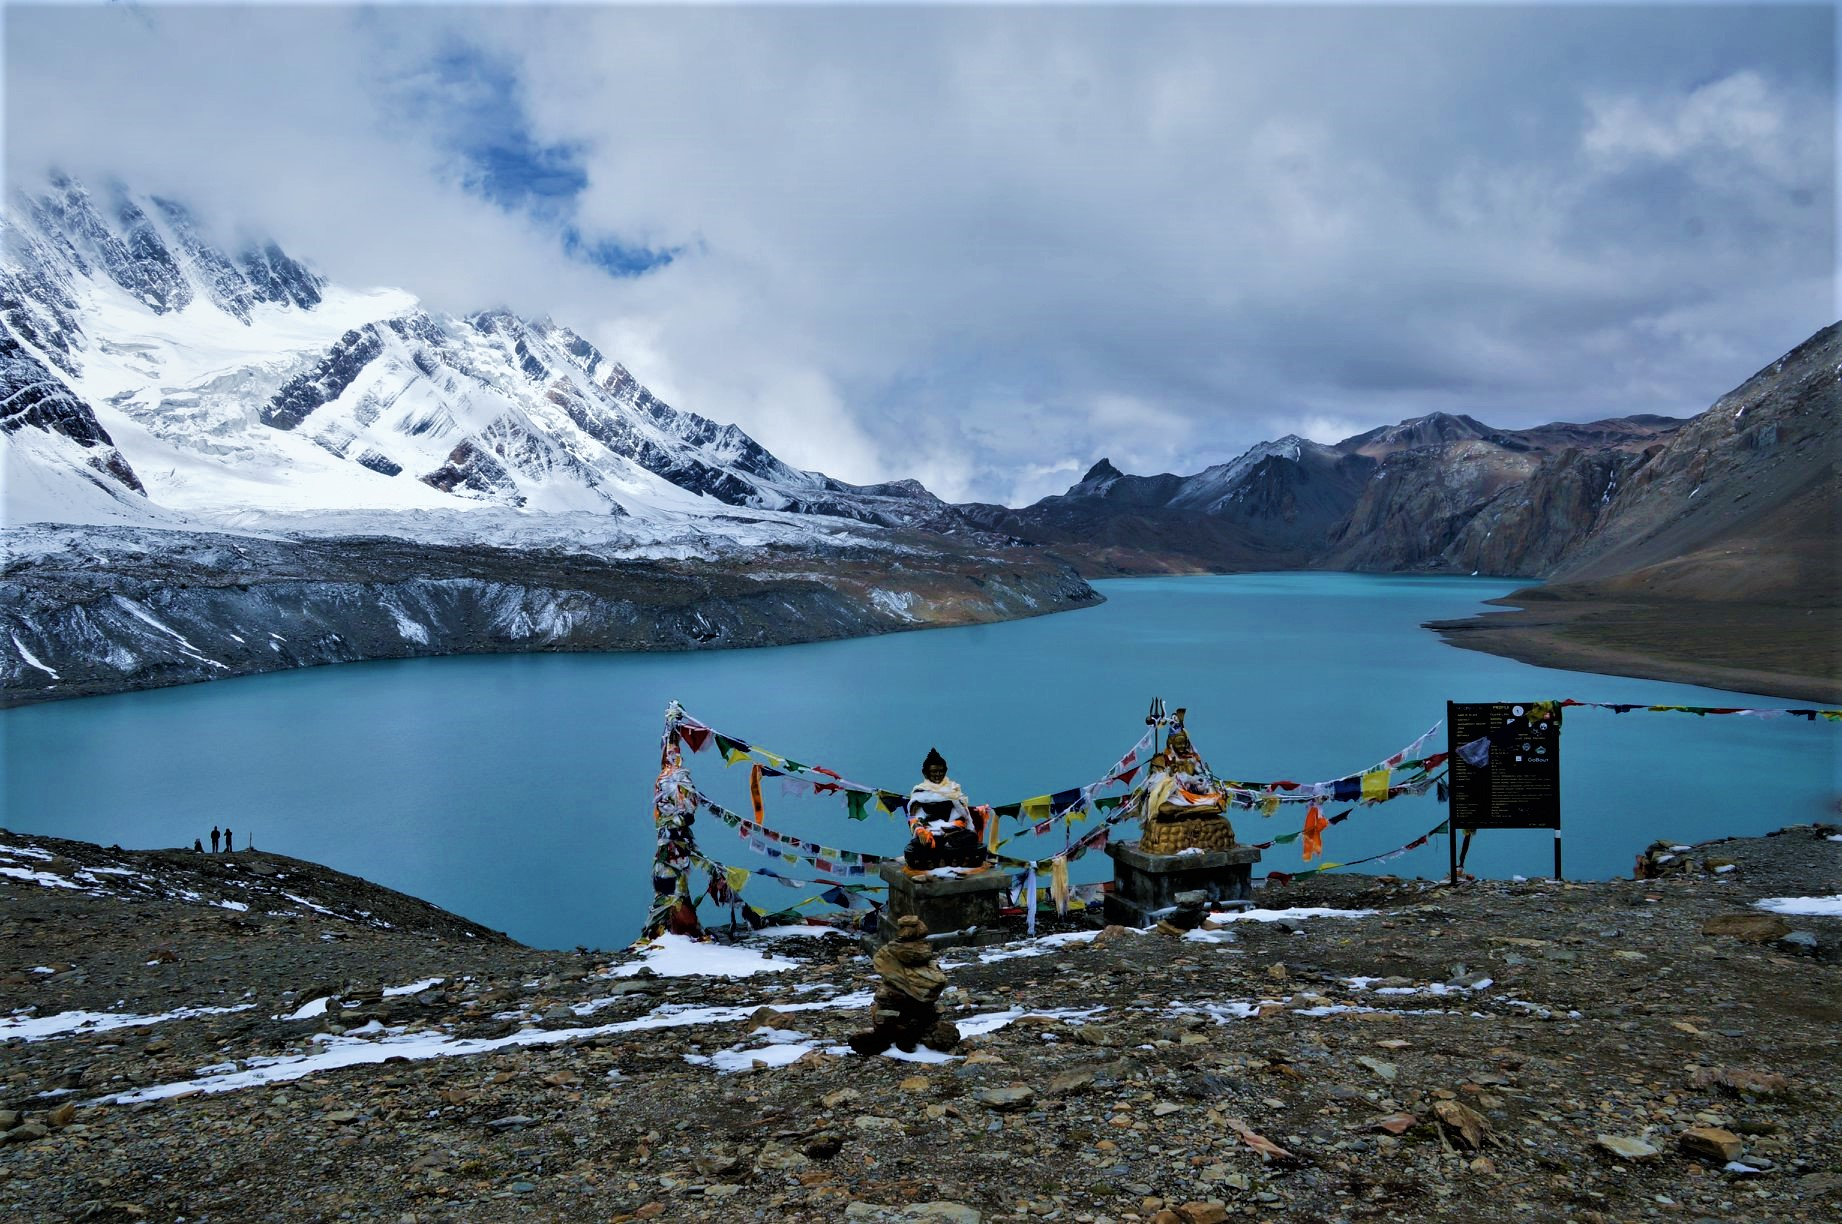 Hindu God Shiva & Buddha statues at the Tilicho Lake, covered with prayer's flags. Blue and calm surface of the lake, mountains covered in the shadow, sunlight in the back. Annapurna Circuit Trek, Nepal.